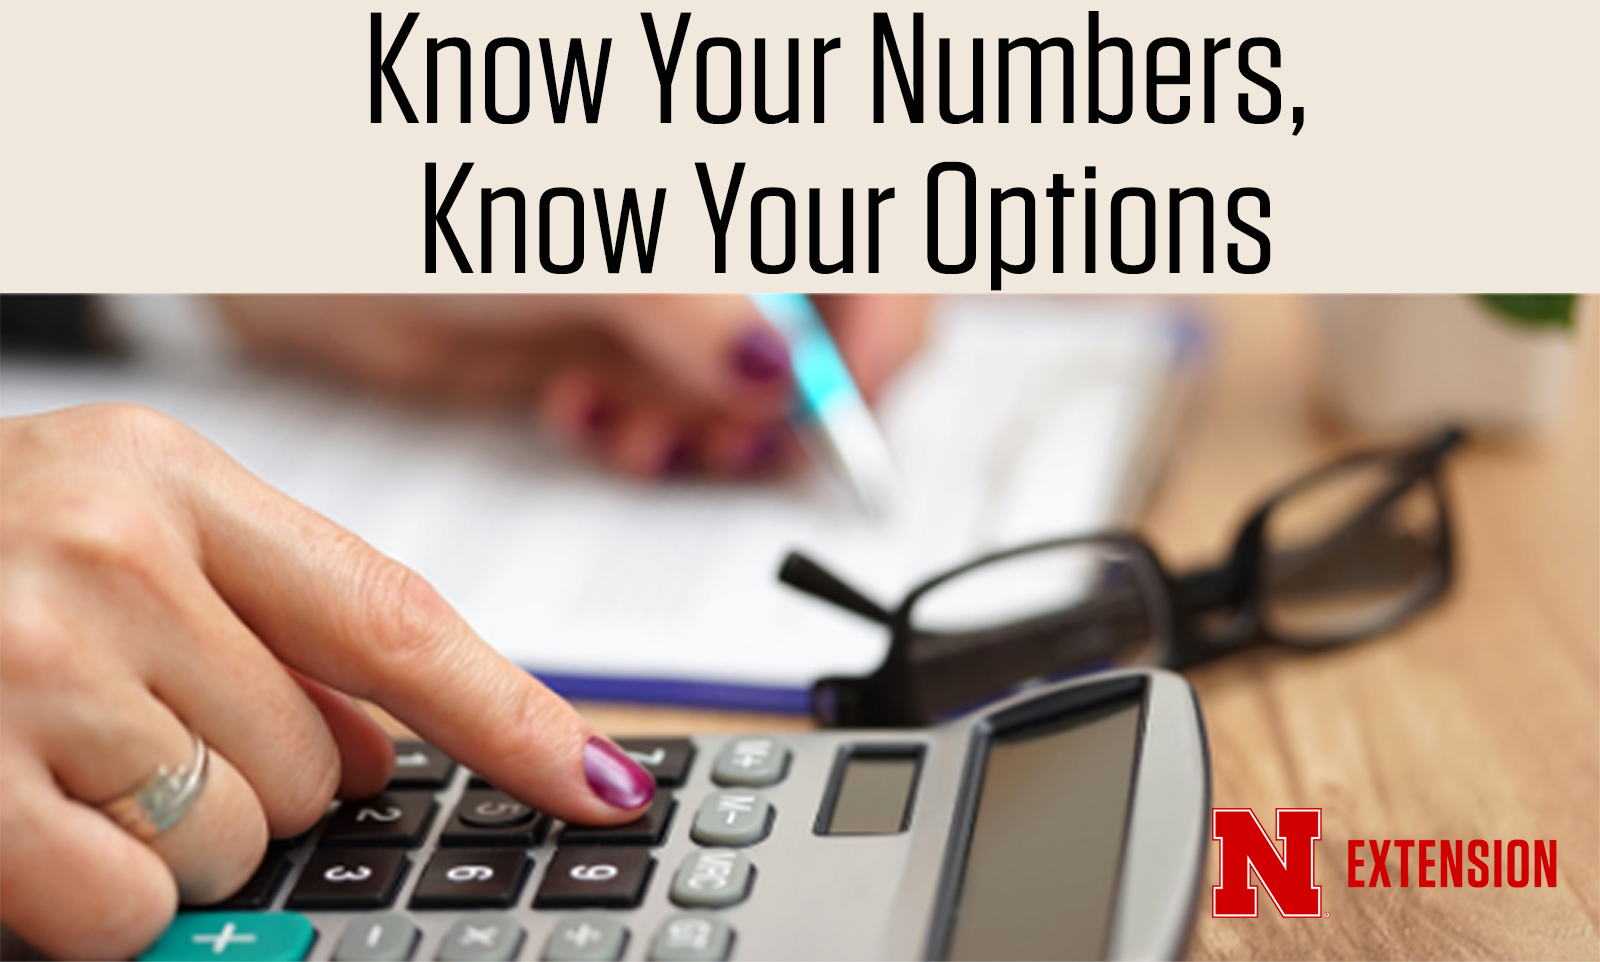 Know Your Numbers calculator graphic.